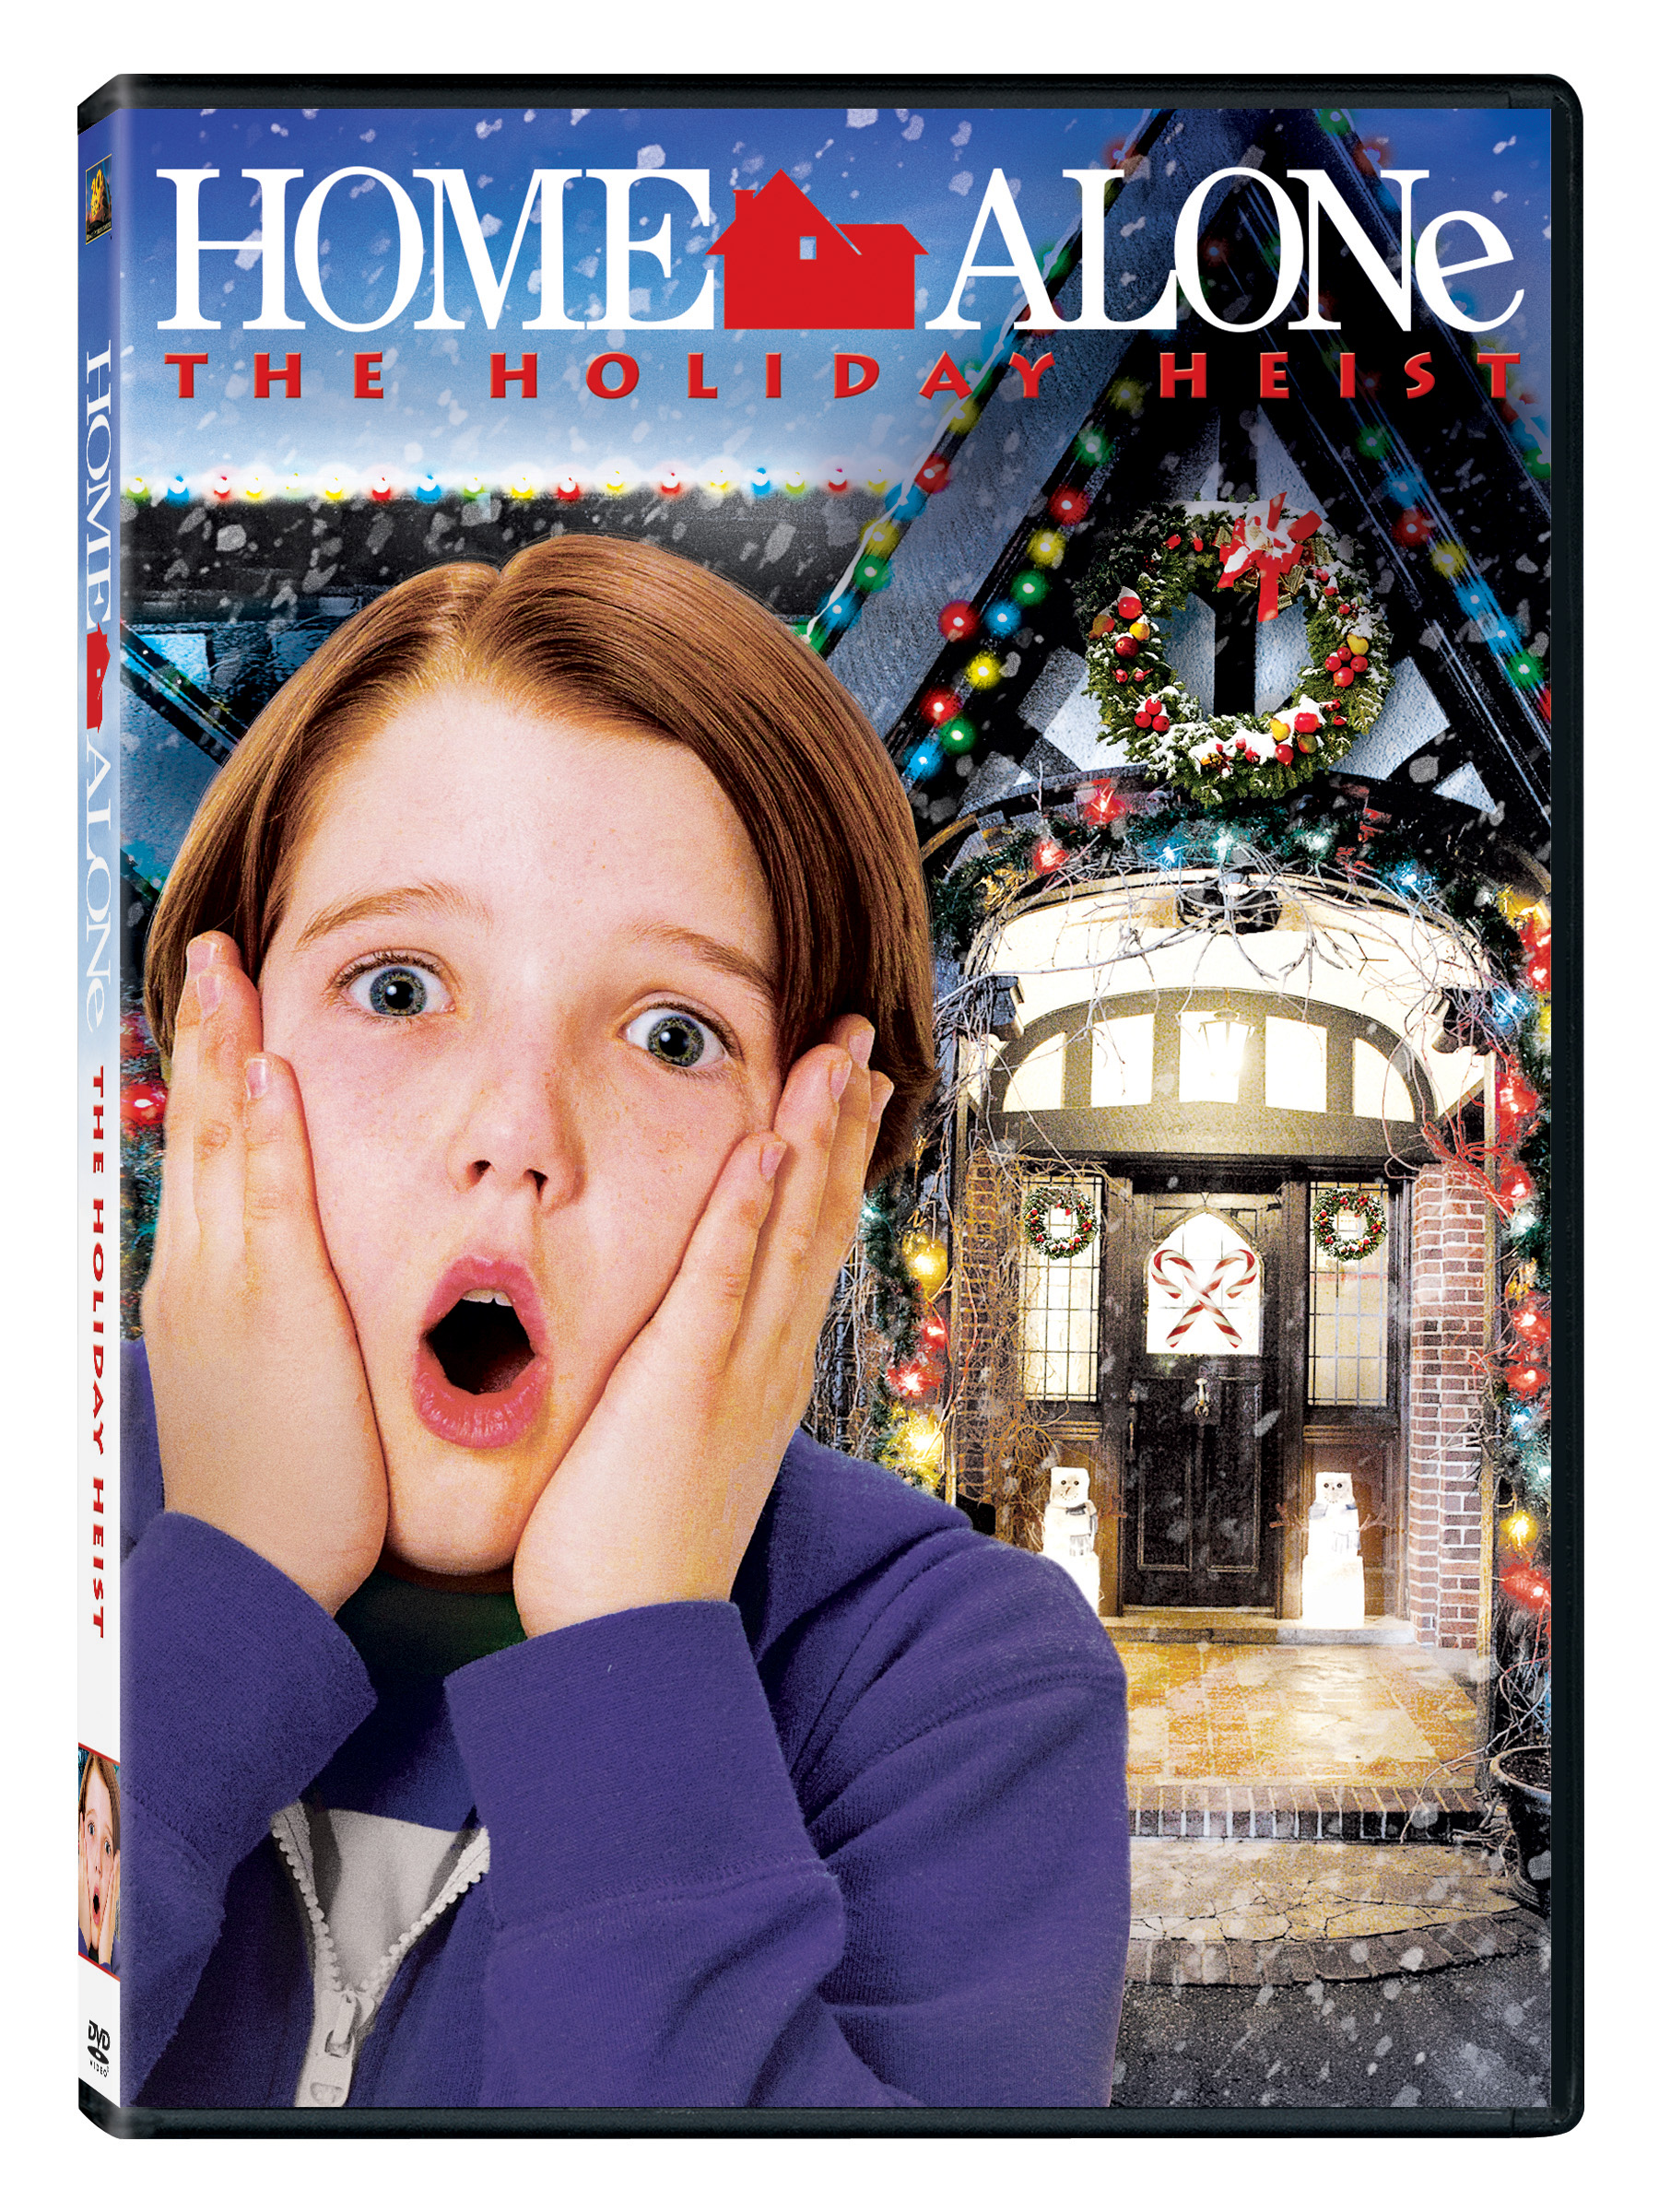 home-alone-holiday-heist